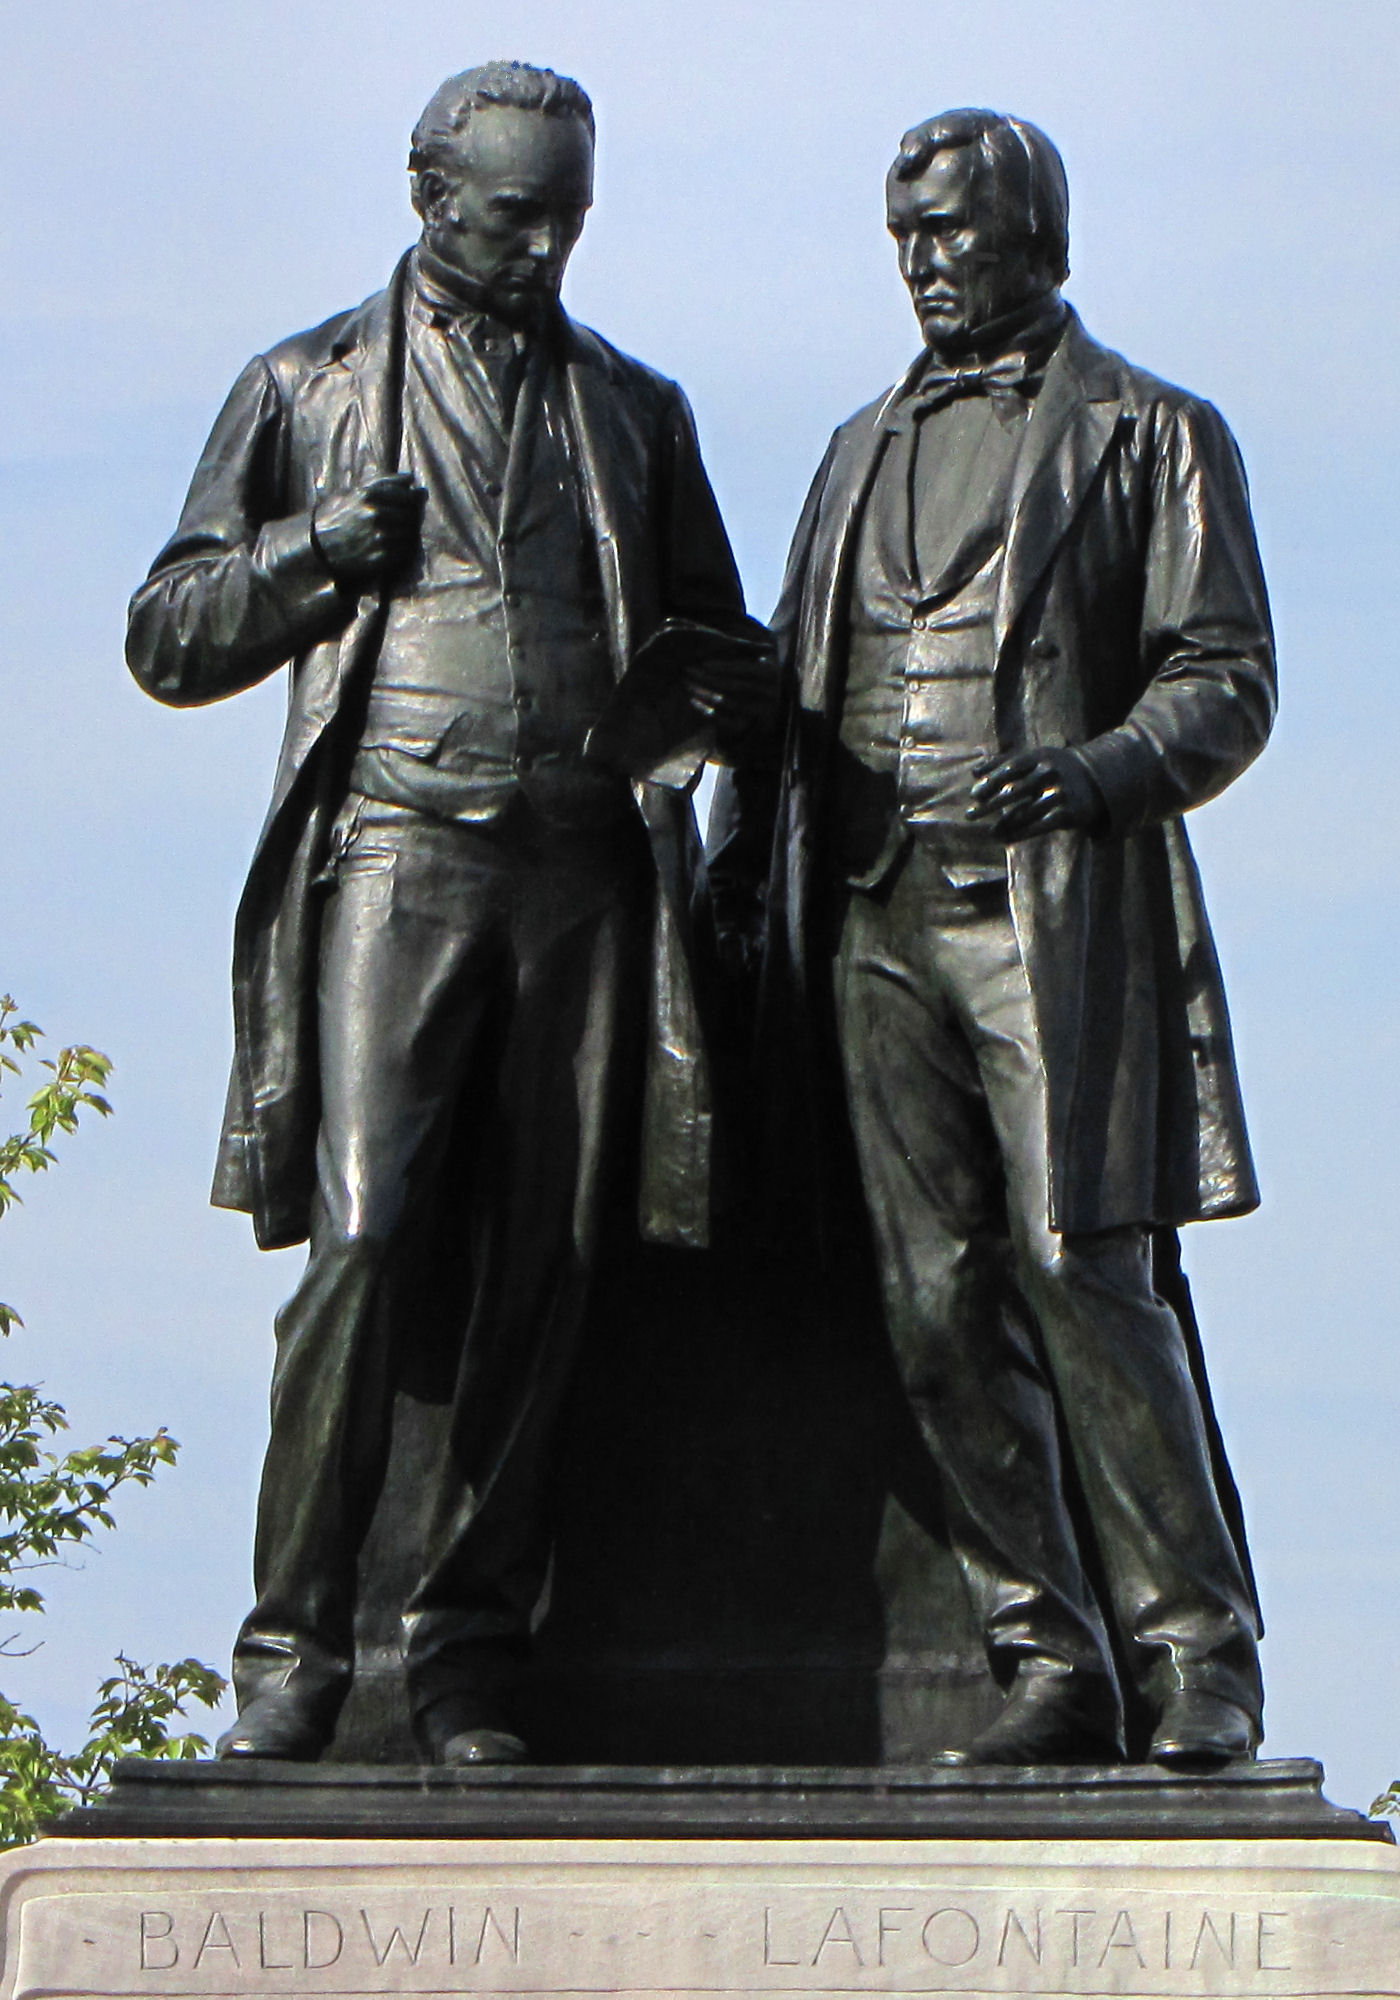 Statue of Robert Baldwin and Louis-Hippolyte Lafontaine